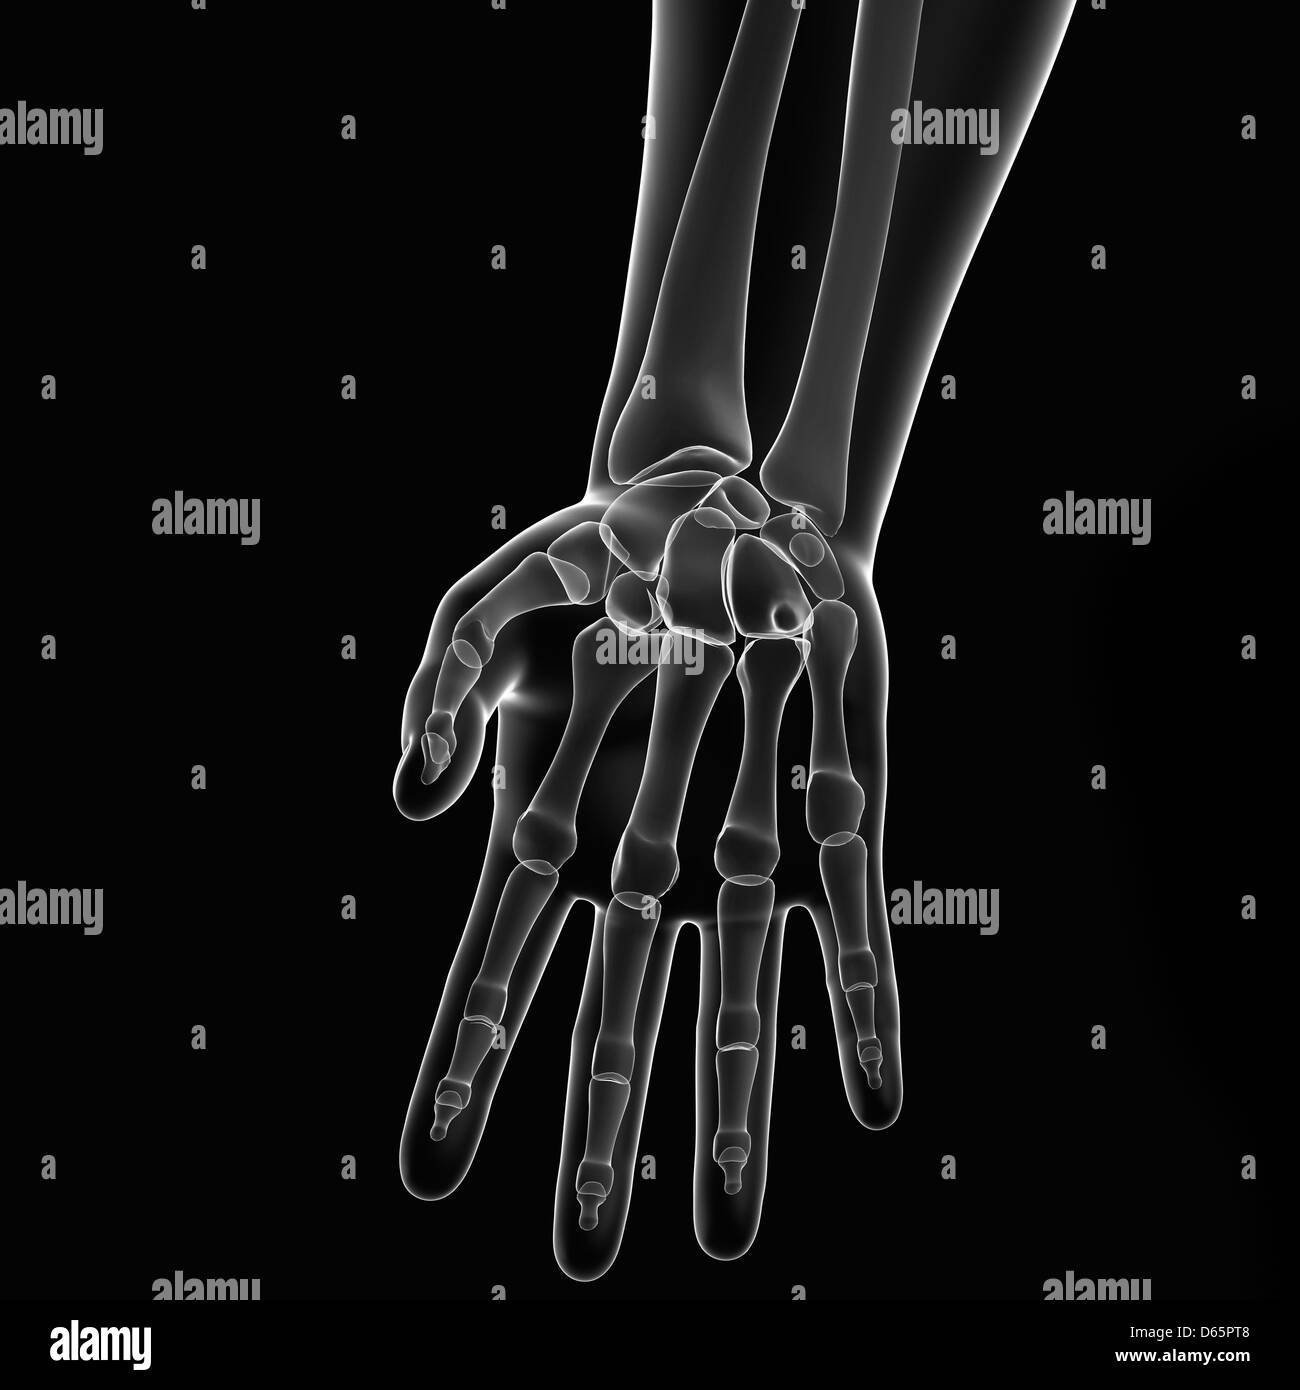 Skeleton Hand Close Up Stock Photos Skeleton Hand Close Up Stock